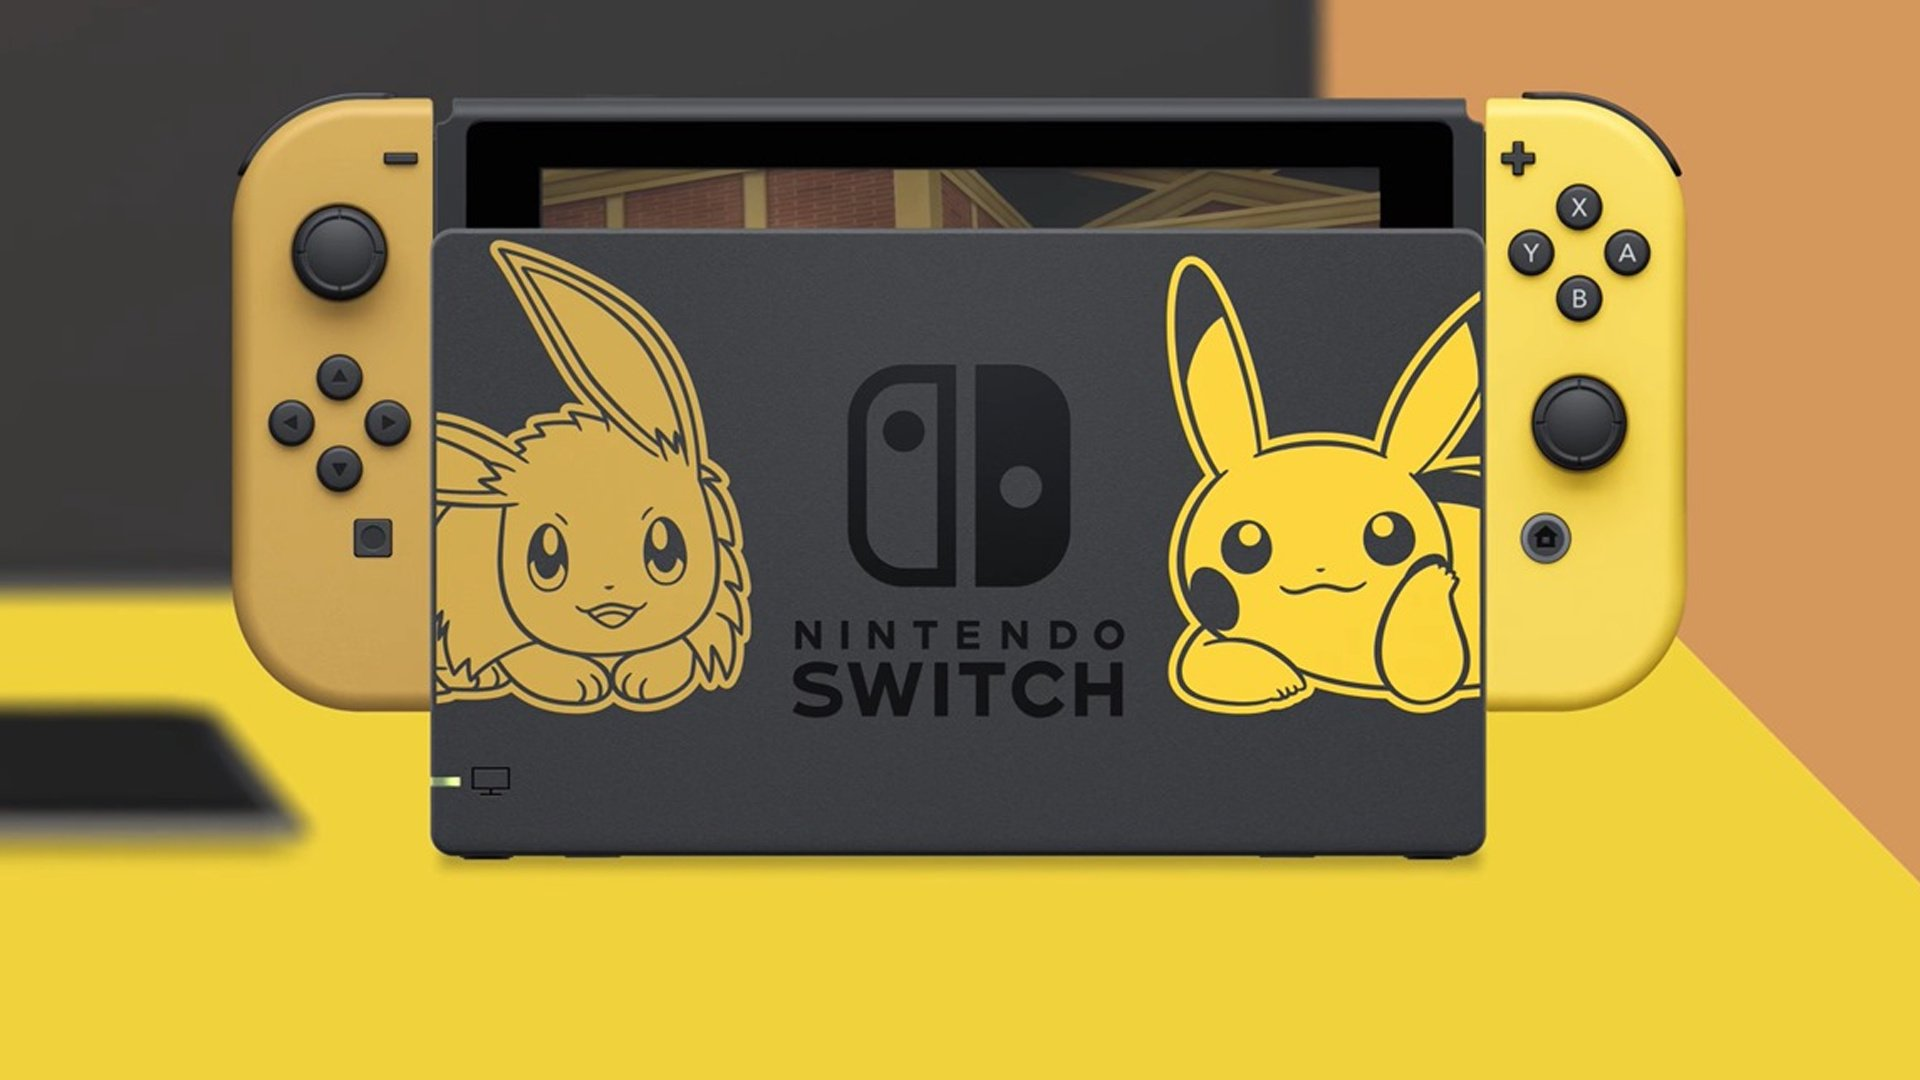 Where To Buy The Pokémon Let S Go Pikachu And Eevee Switch Console